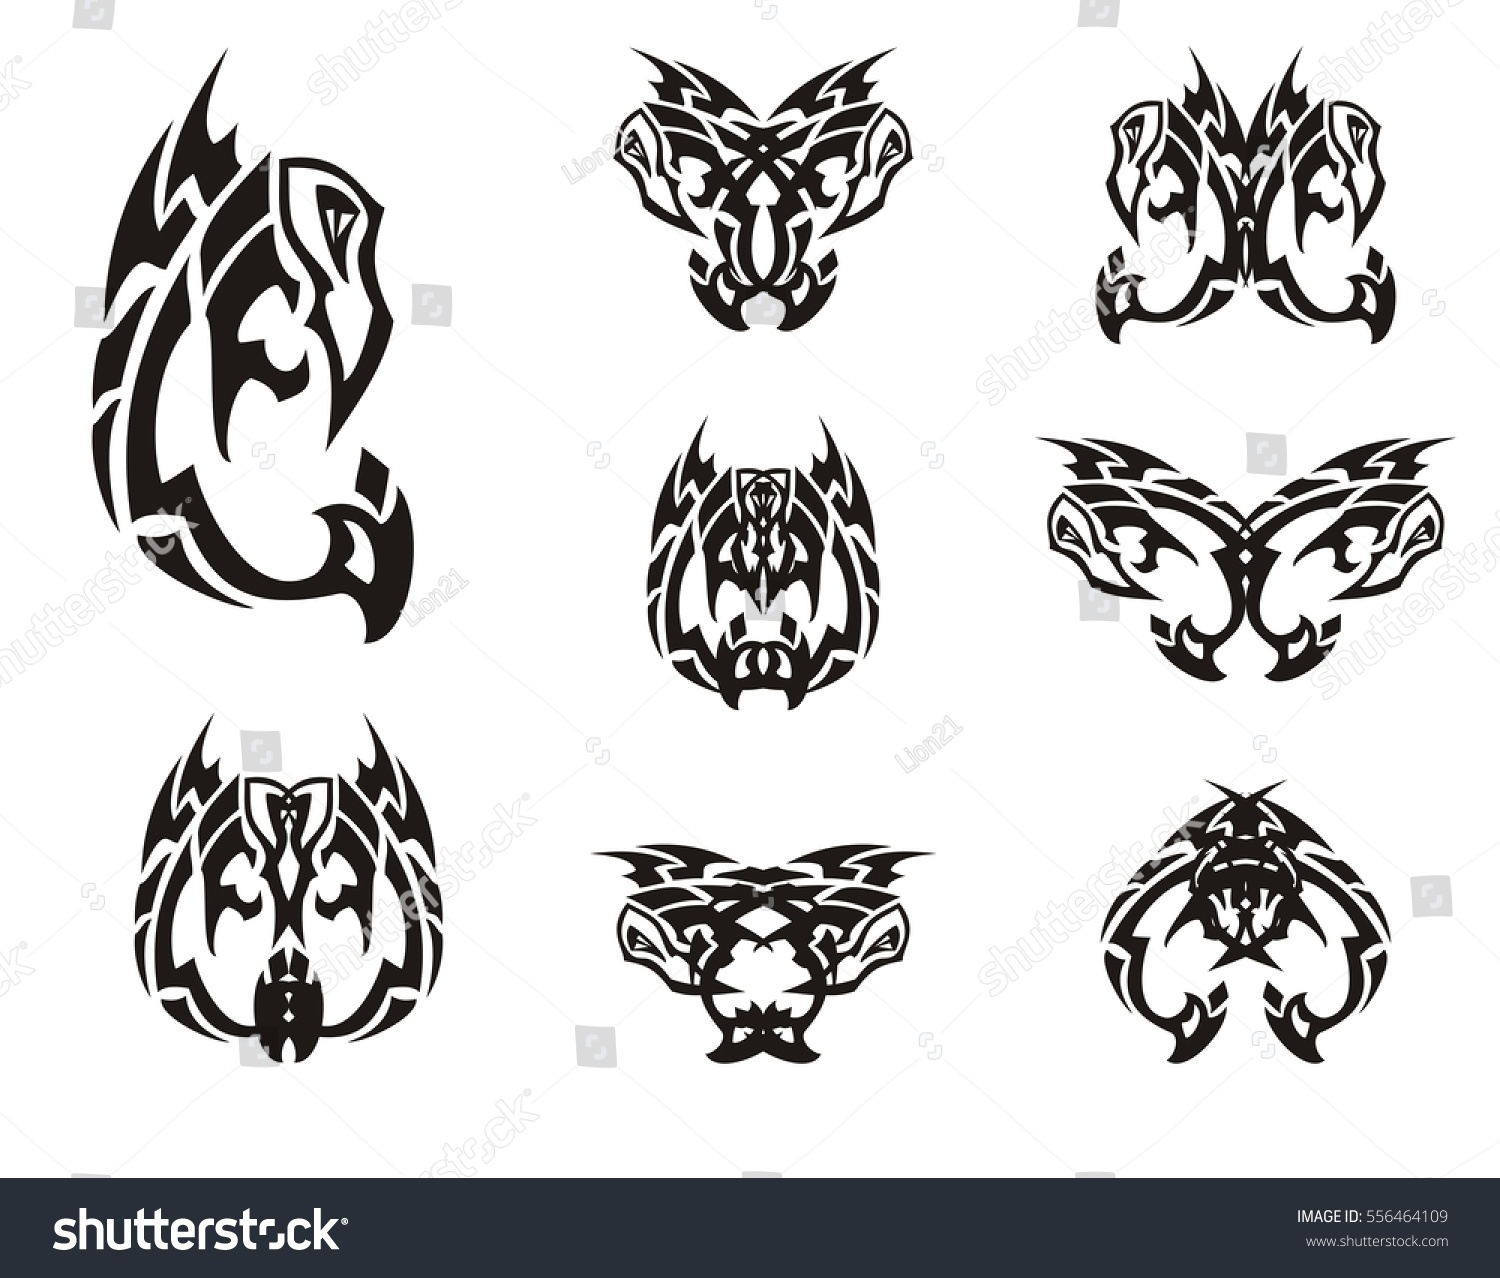 Peaked eagle symbols tribal style black stock vector 556464109 peaked eagle symbols in tribal style black and white eagle stylization and double symbols formed biocorpaavc